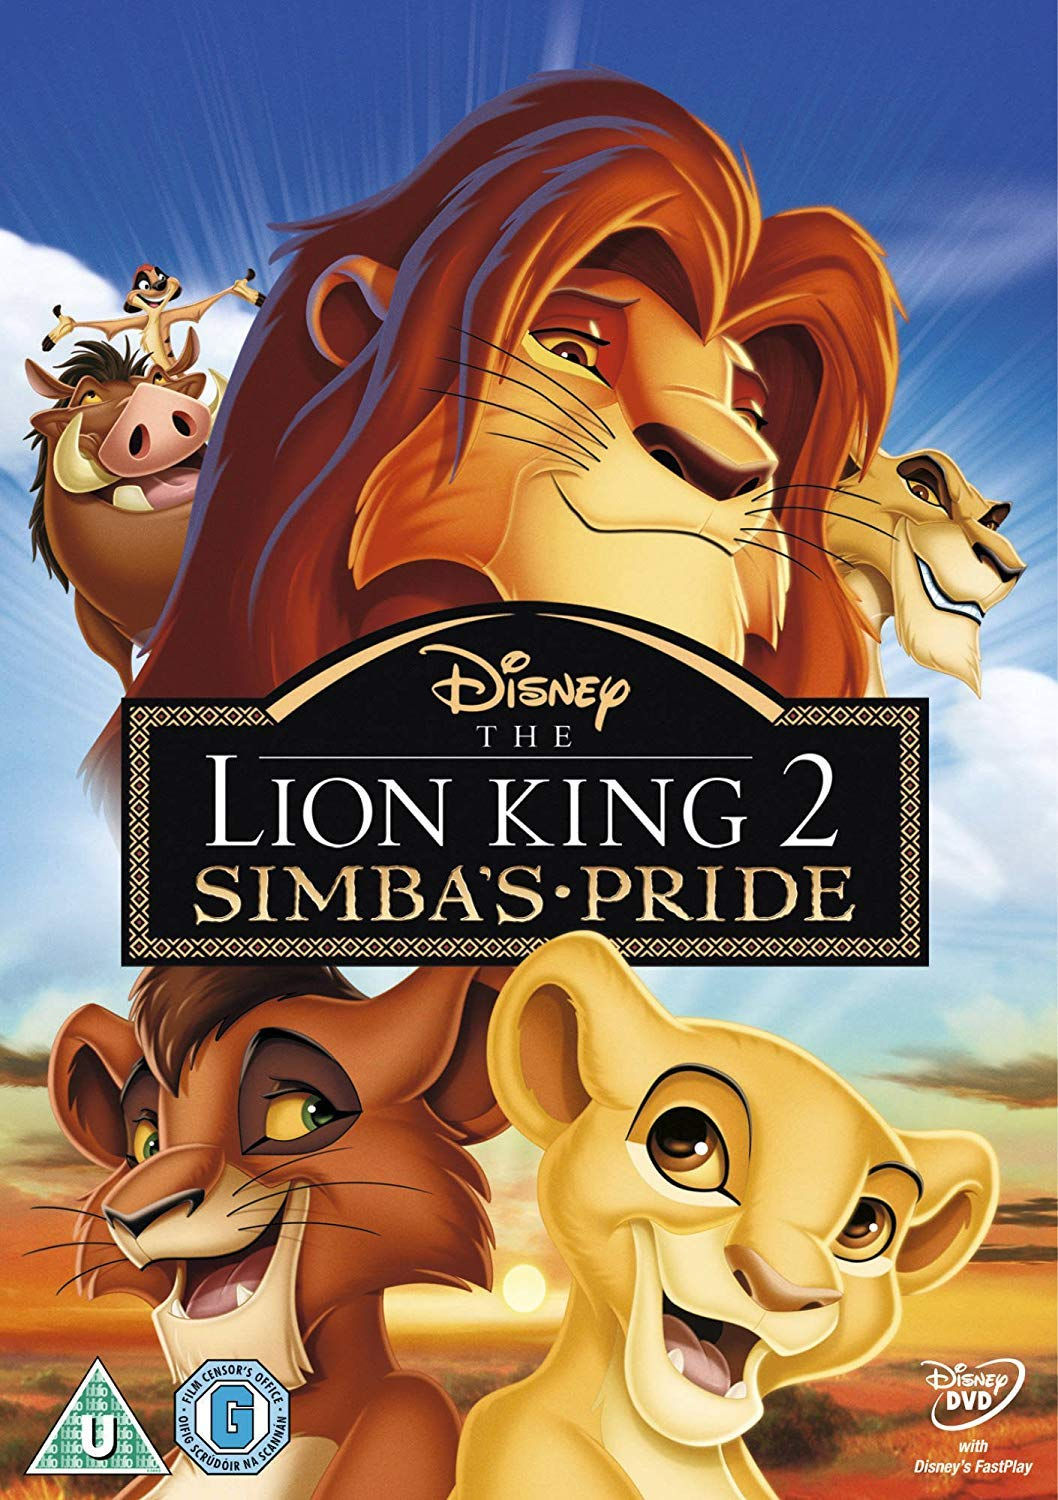 Amazon Com The Lion King 2 Simba S Pride Special Edition Dvd Matthew Broderick Neve Campbell Andy Dick Robert Guillaume James Earl Jones Movies Tv